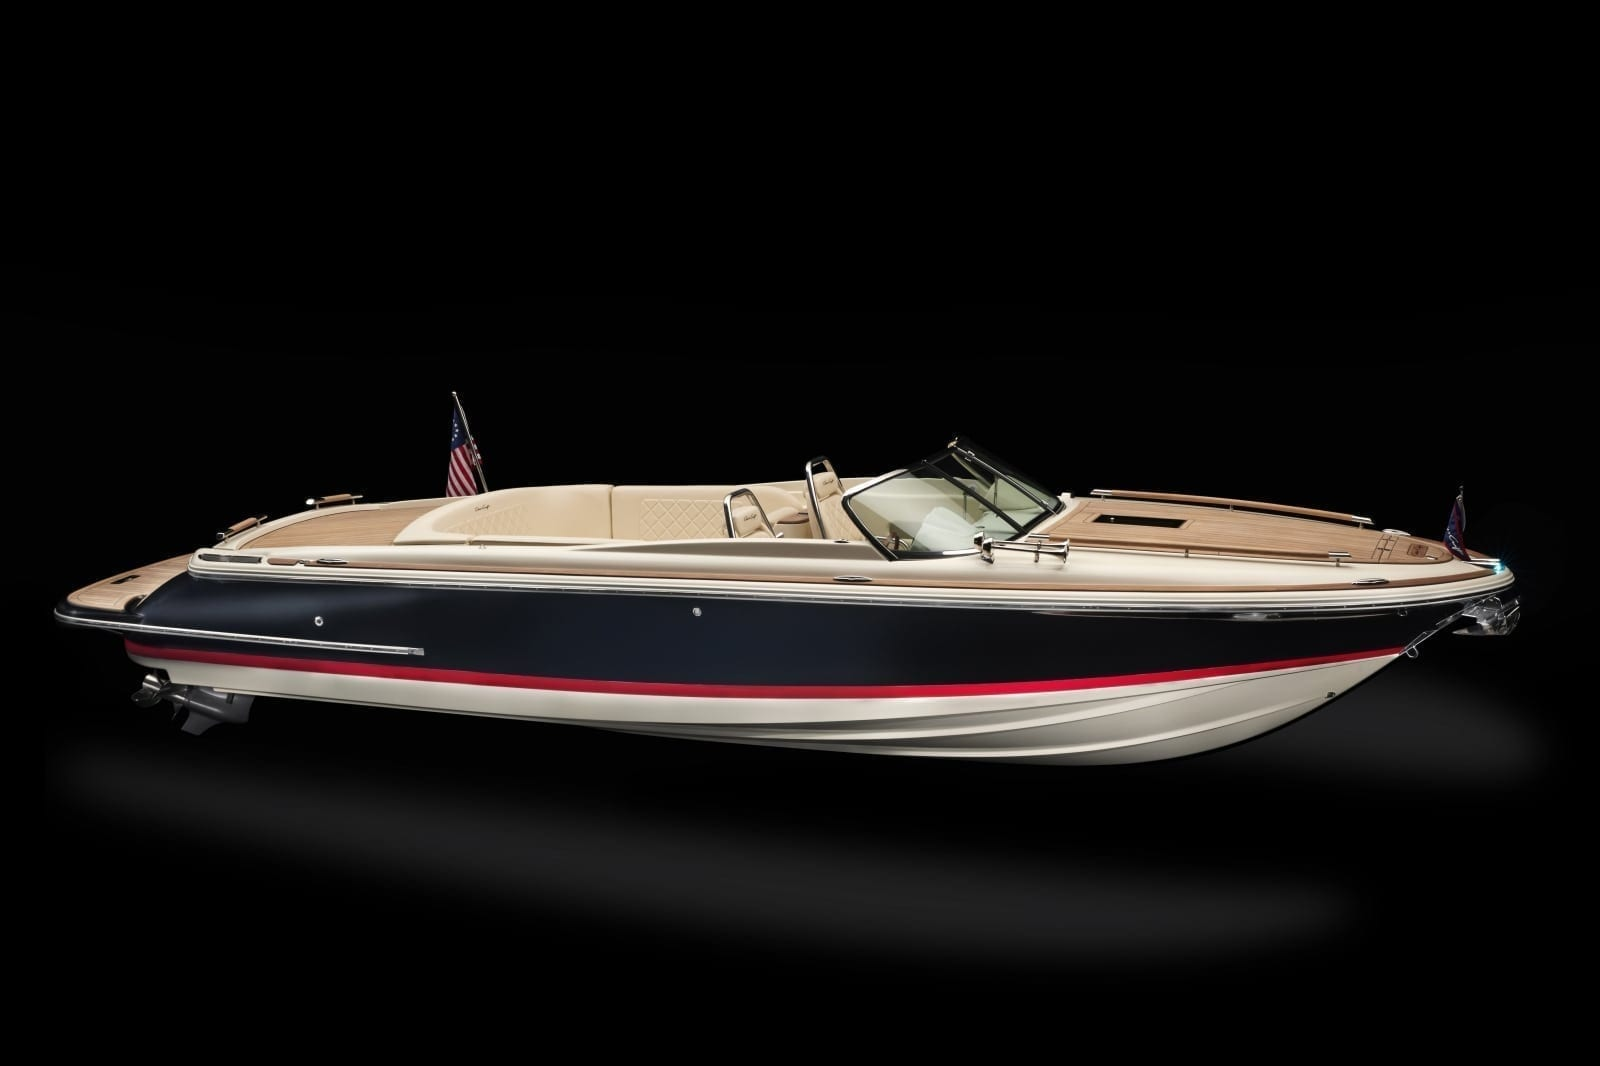 Chris Craft Corsair 27 Starboard Bow Profile